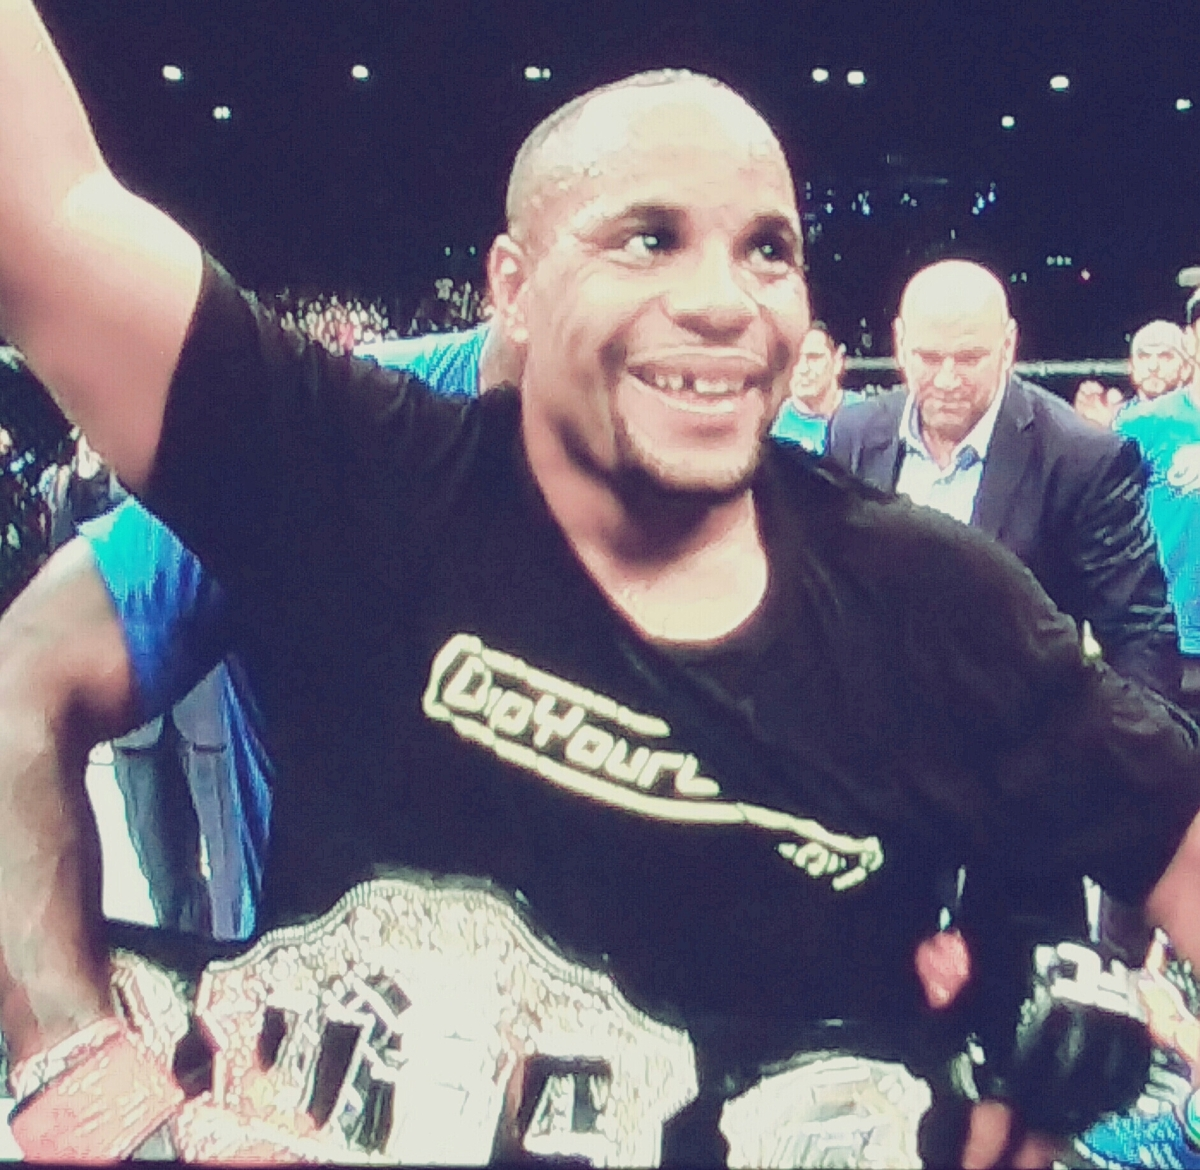 UFC 187 Results: Daniel Cormier Becomes New Light Heavyweight Champion